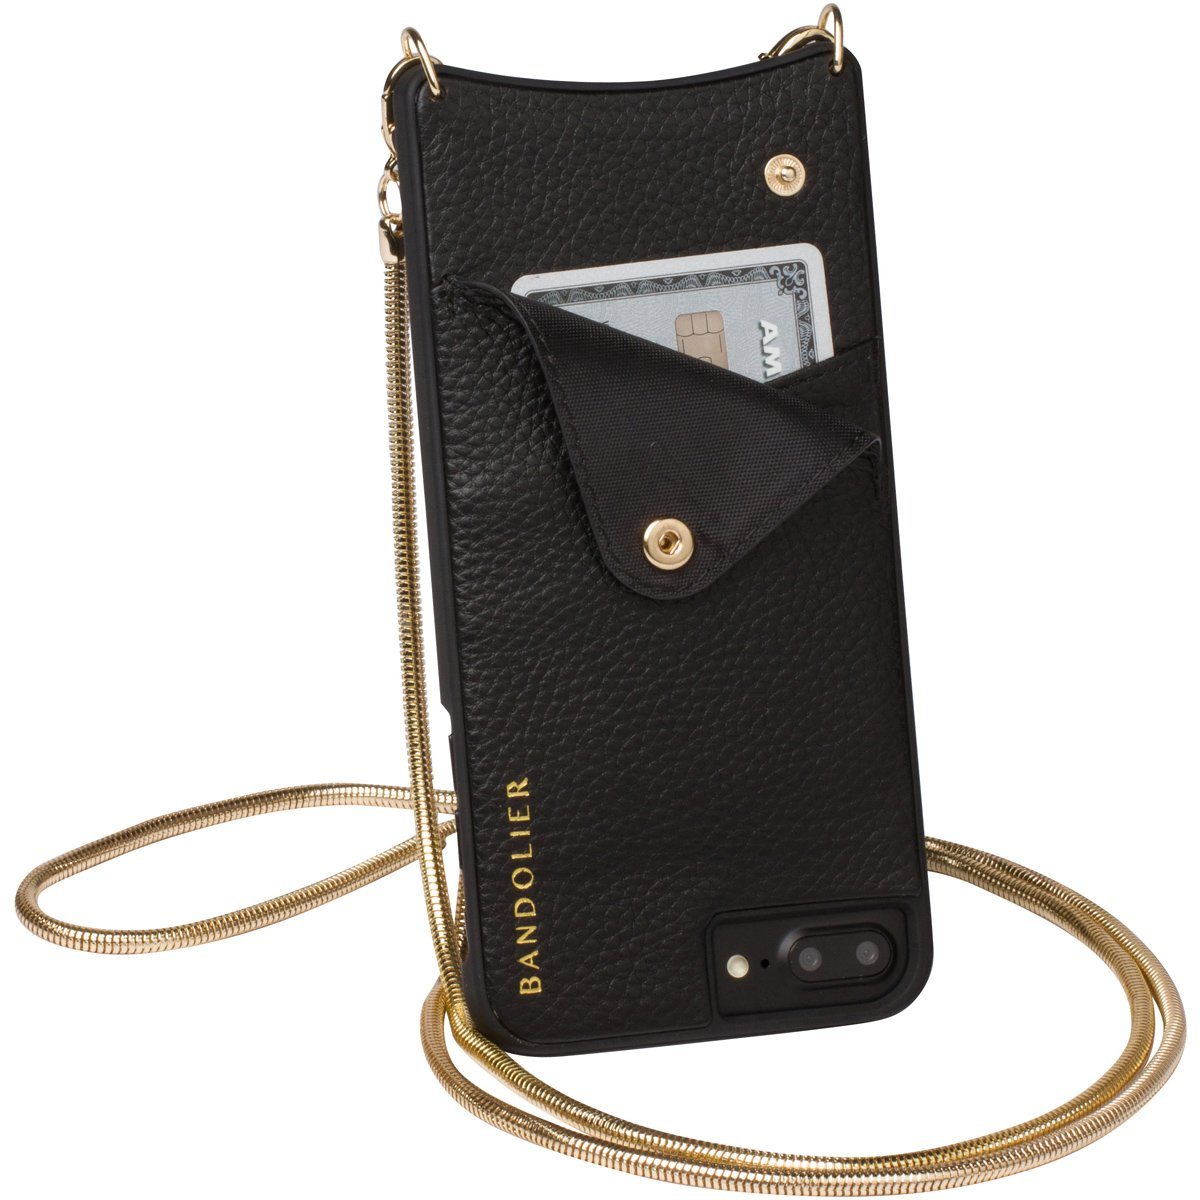 Bandolier [Belinda] Crossbody Phone Case and Wallet - Compatible with iPhone 8/7 / 6 - Black Leather with Gold Accent